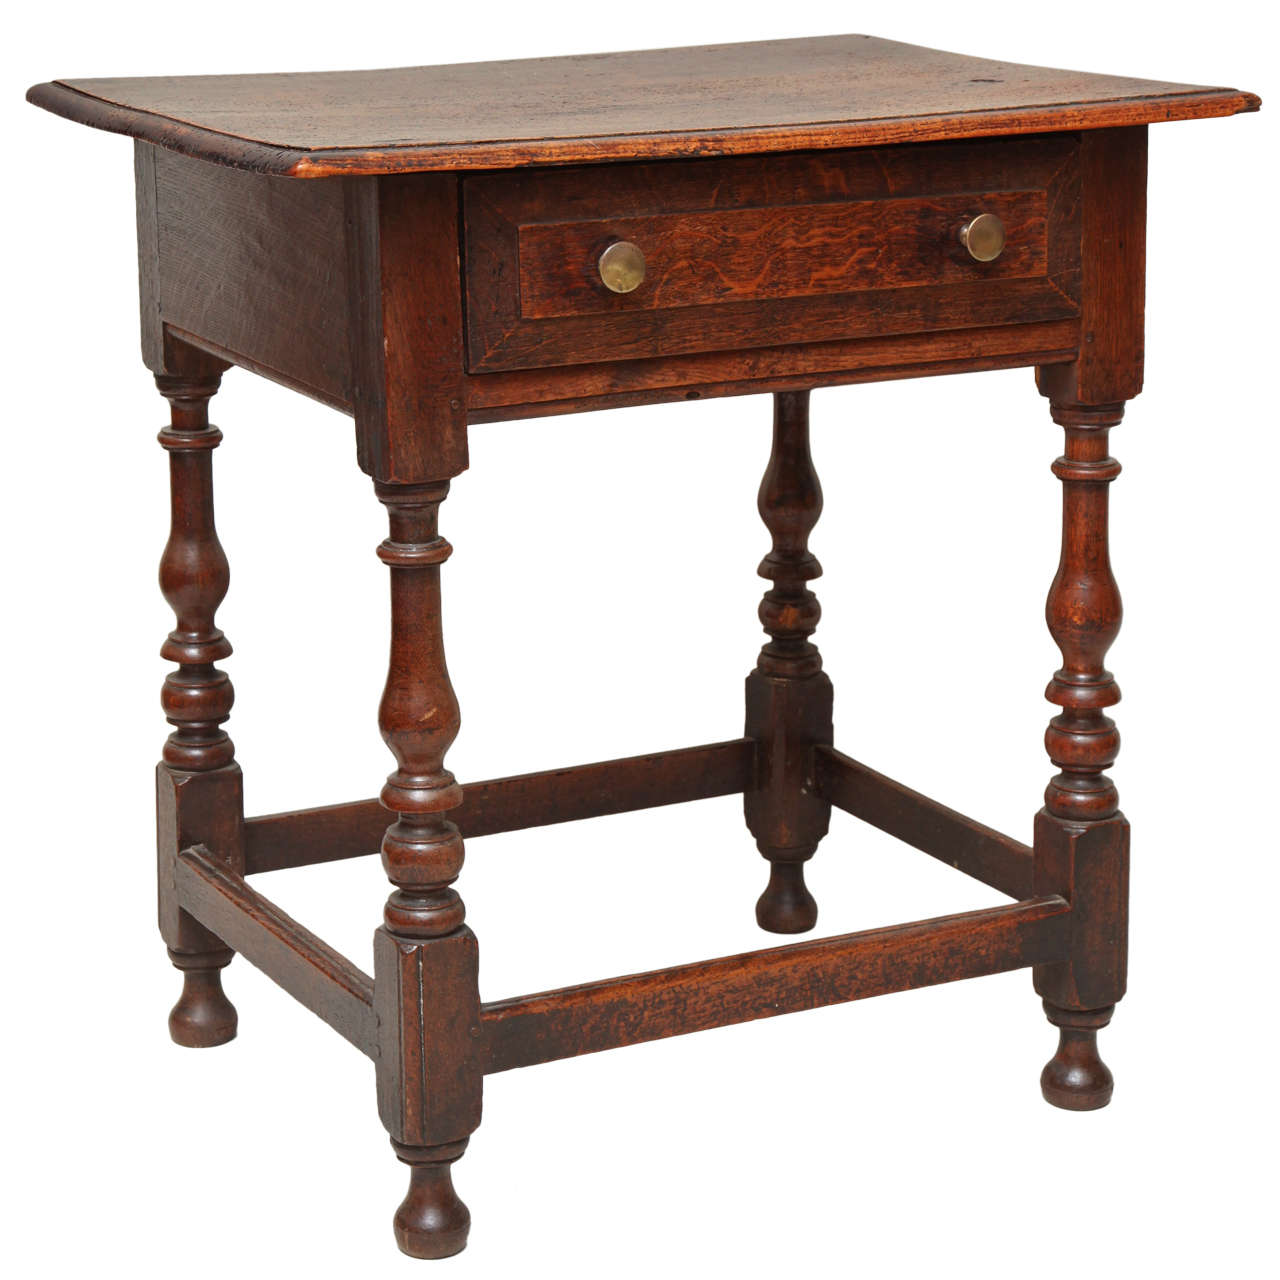 Late 17th century english oak and ash side table at 1stdibs for 12x table